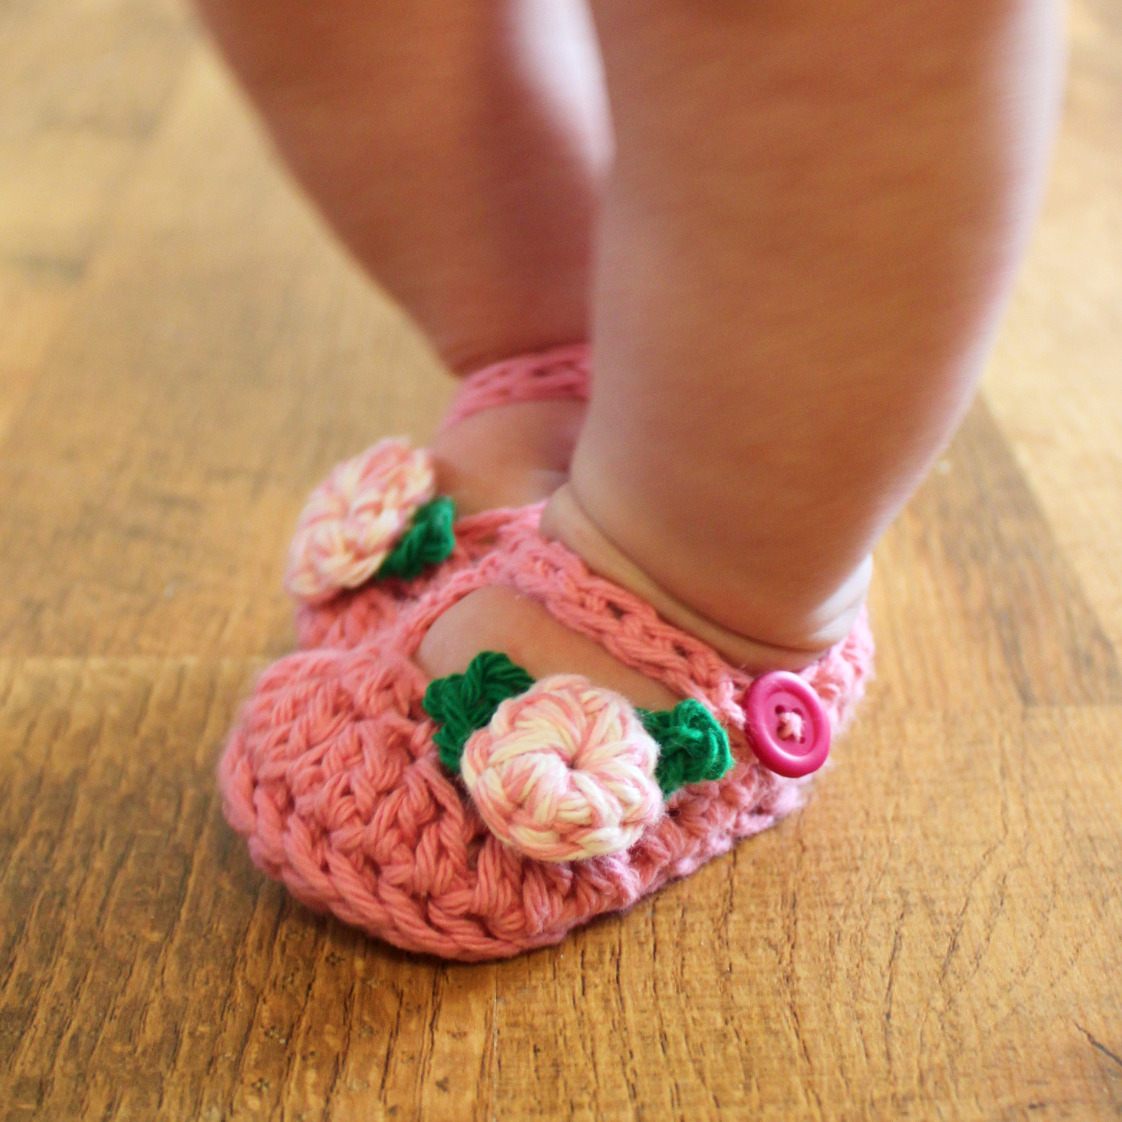 Acorn kids' slippers are available in booties and moccasins for boys and girls. Popular styles include Critter booties for toddlers and Easy booties and mocs for kids. Warm, soft fleece and textured uppers provide casual comfort.